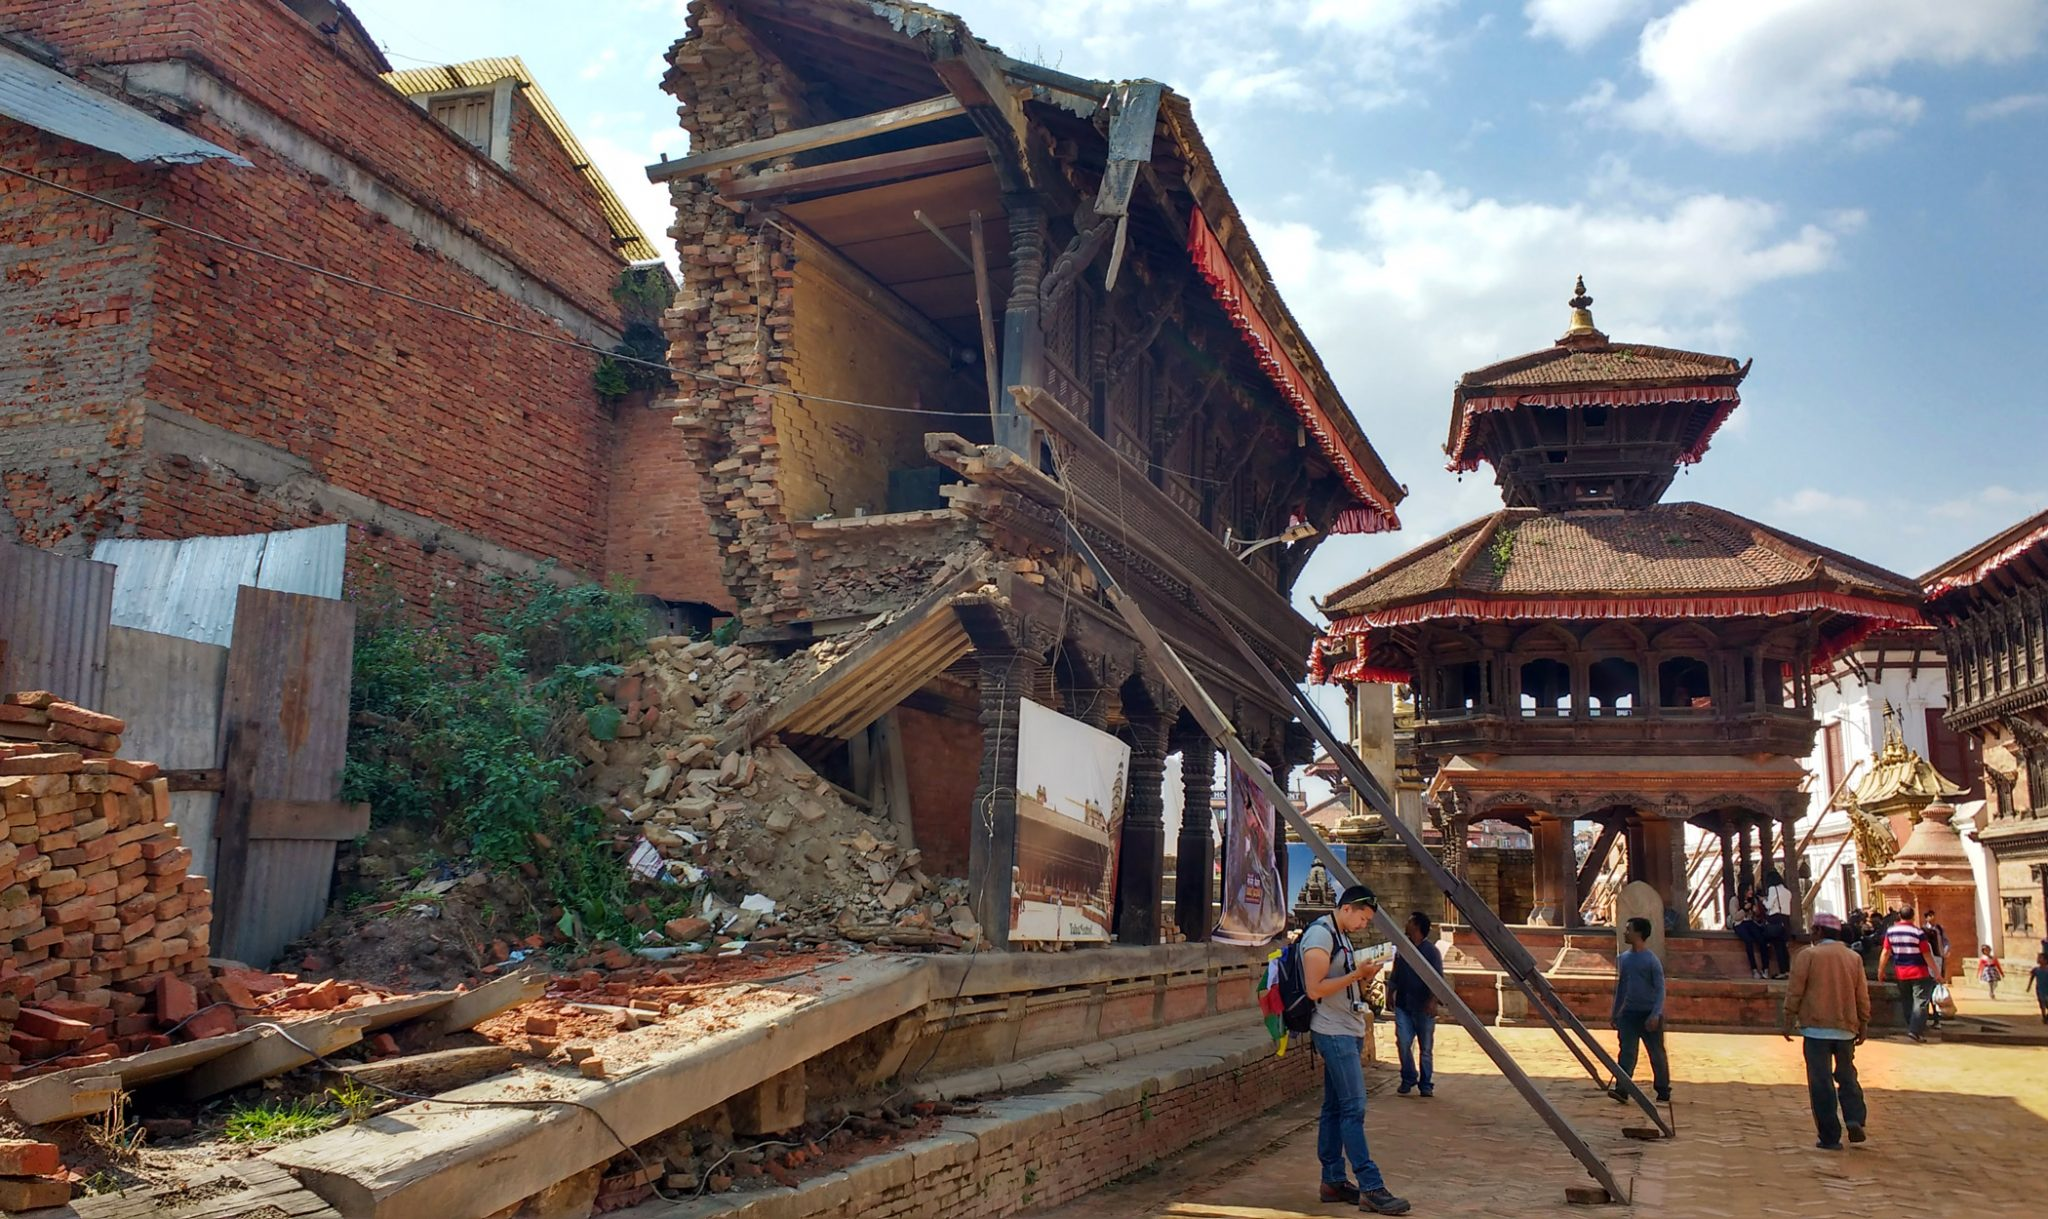 Right at the centre of Bhaktapur Durbar square lies a 15th-century palace, sections of which collapsed in the recent quake. The interior has remained closed since the 1934 earthquake. The courtyard surrounding it still lies in ruins and the uncleared debris from the broken down buildings have now become a part of the temple complex.